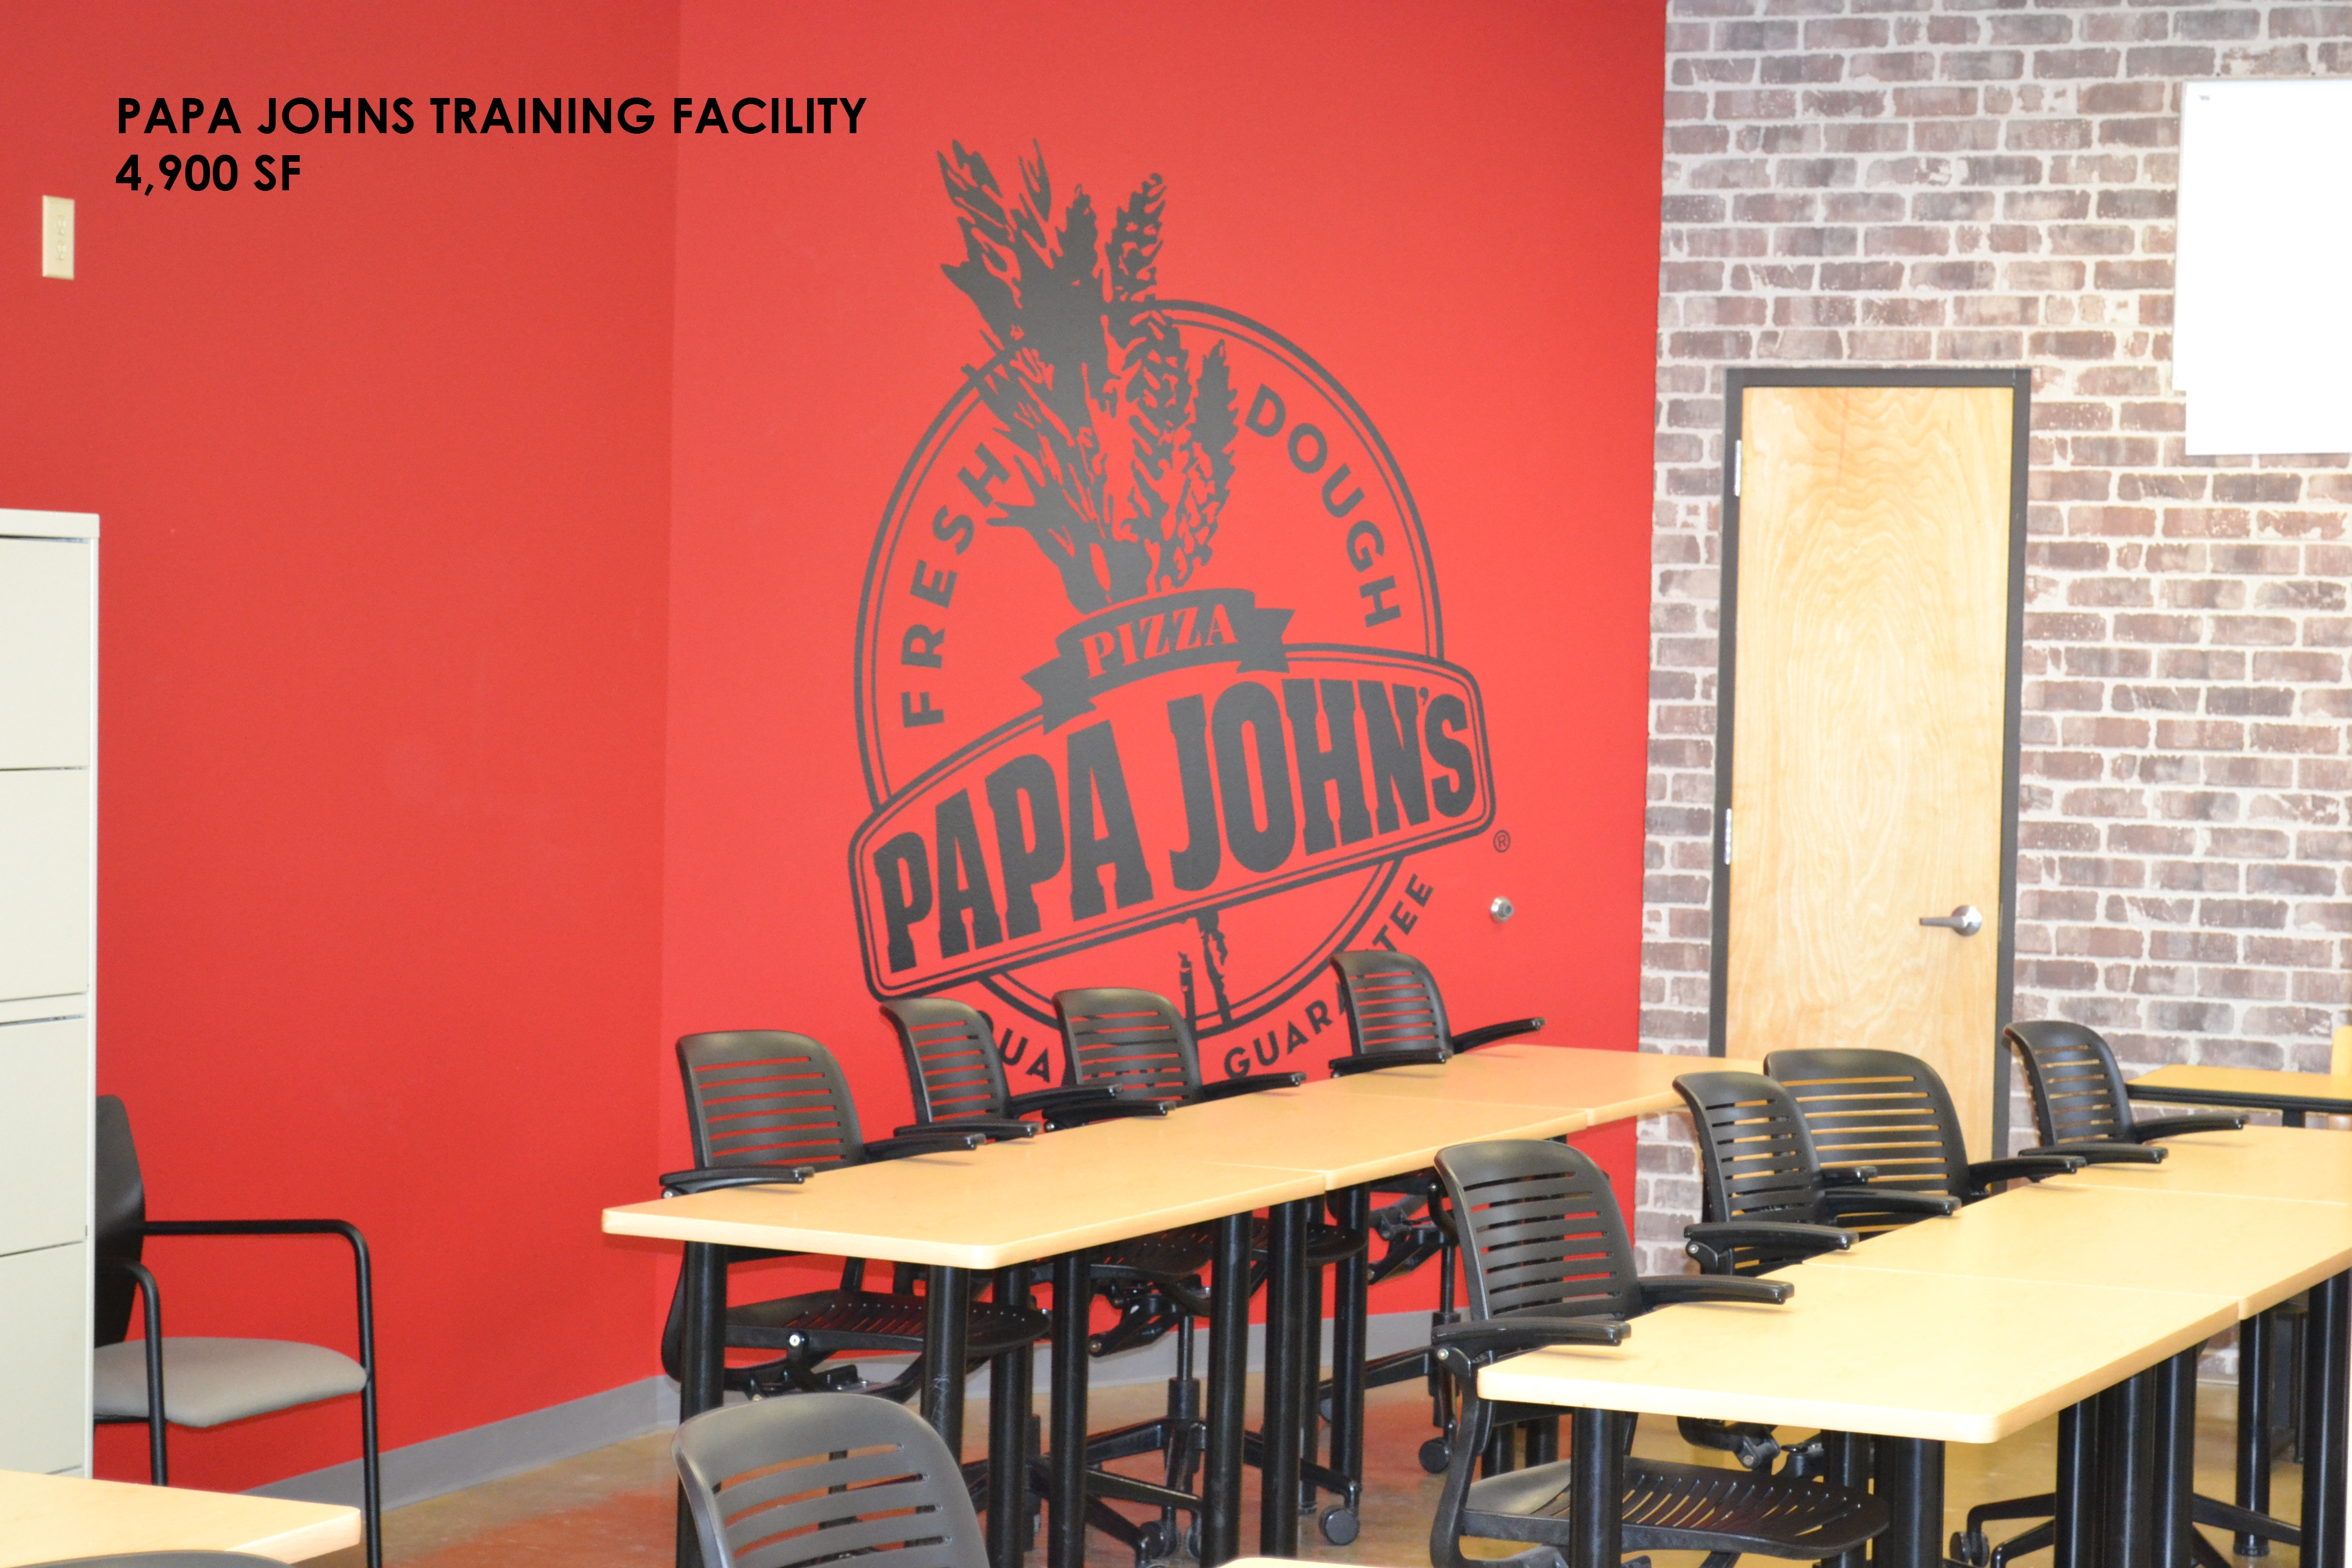 Papa Johns Training Facility